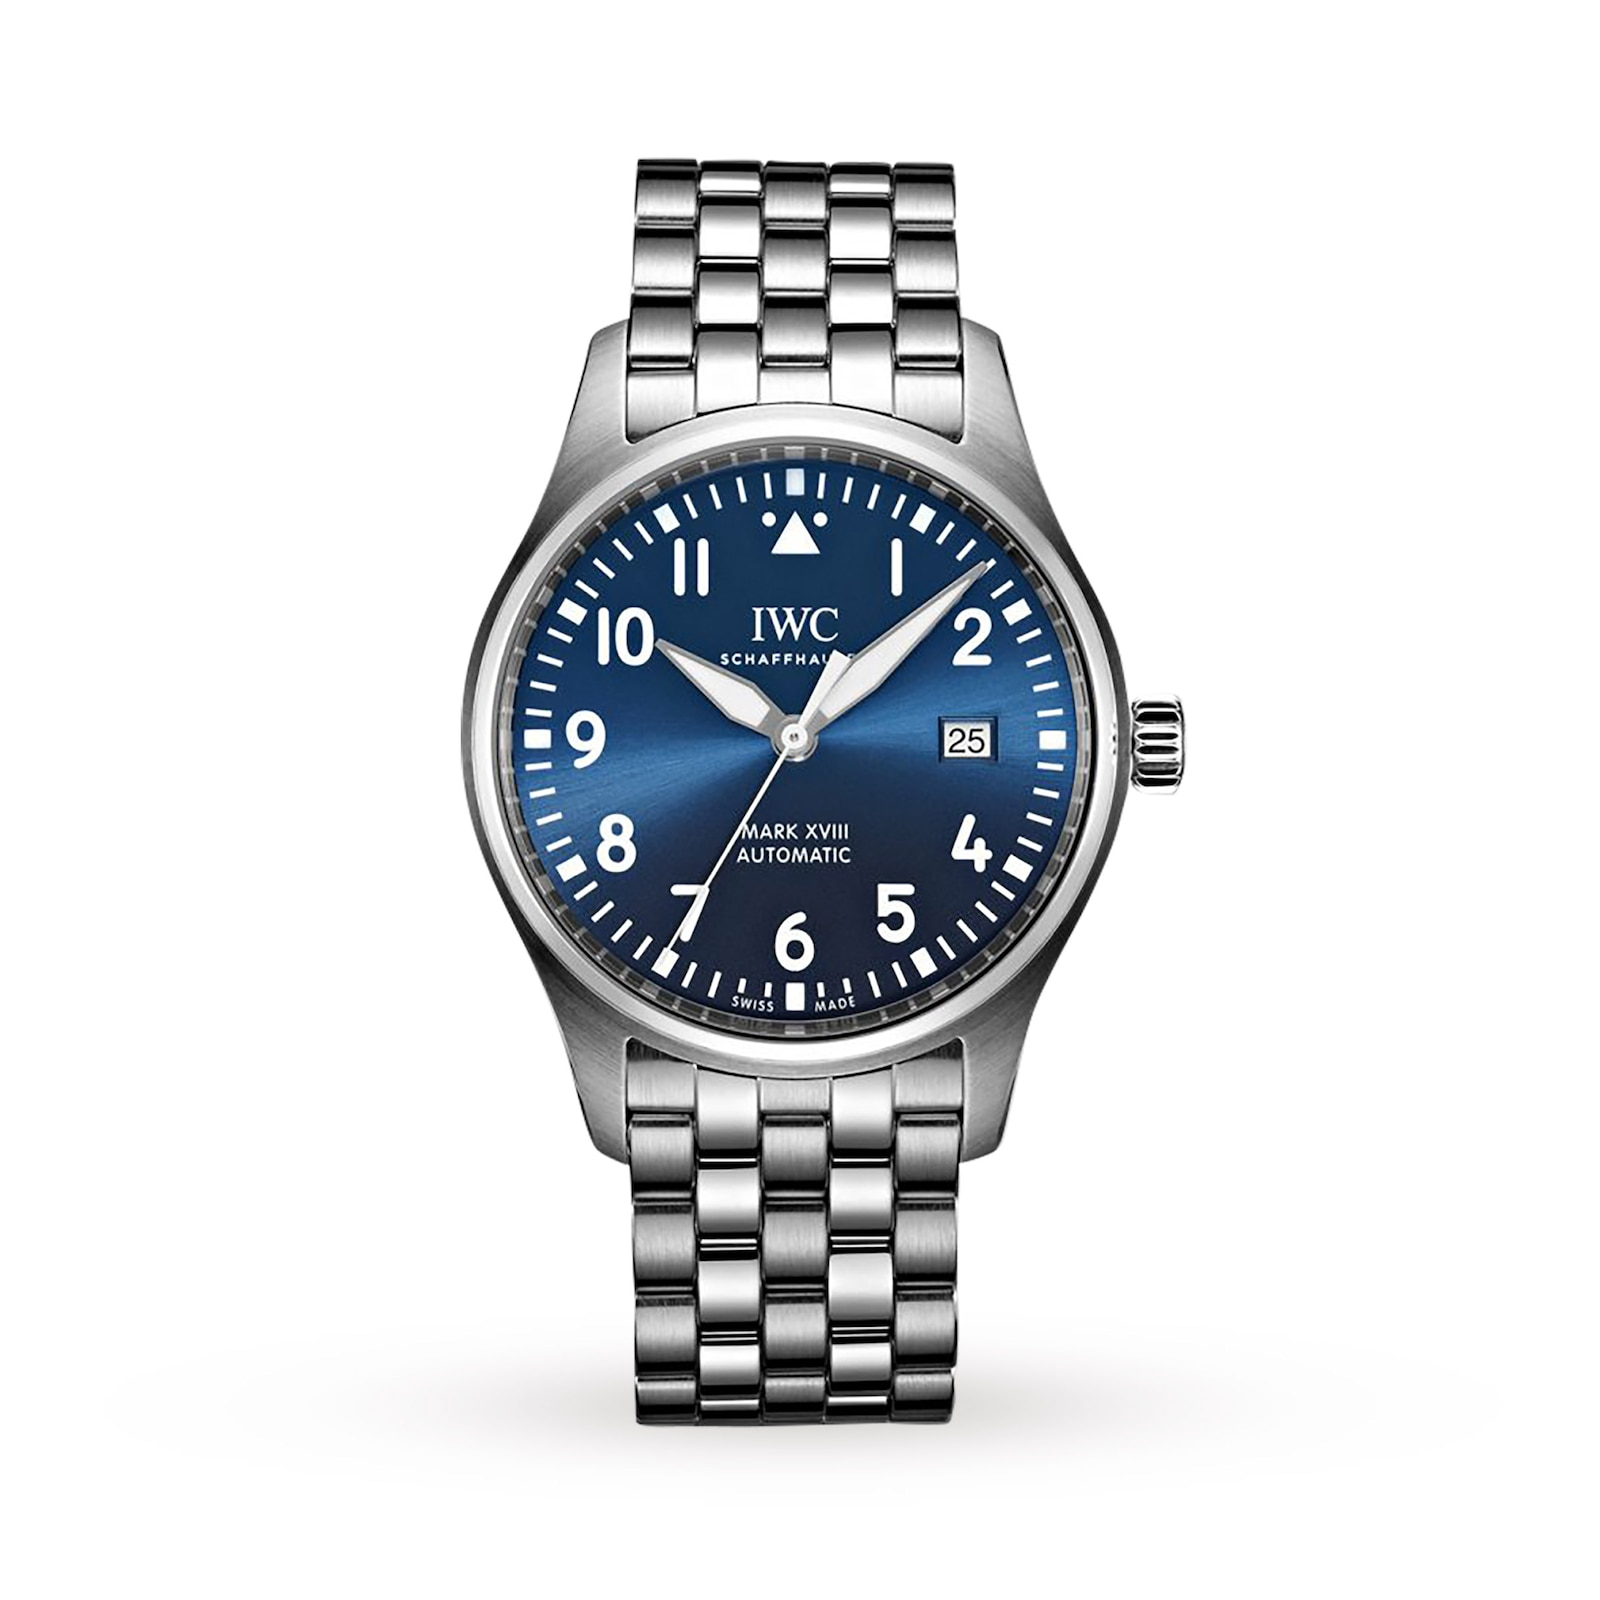 IWC Pilot's Mark XVIII Edition 'Le Petit Prince' Mens Watch